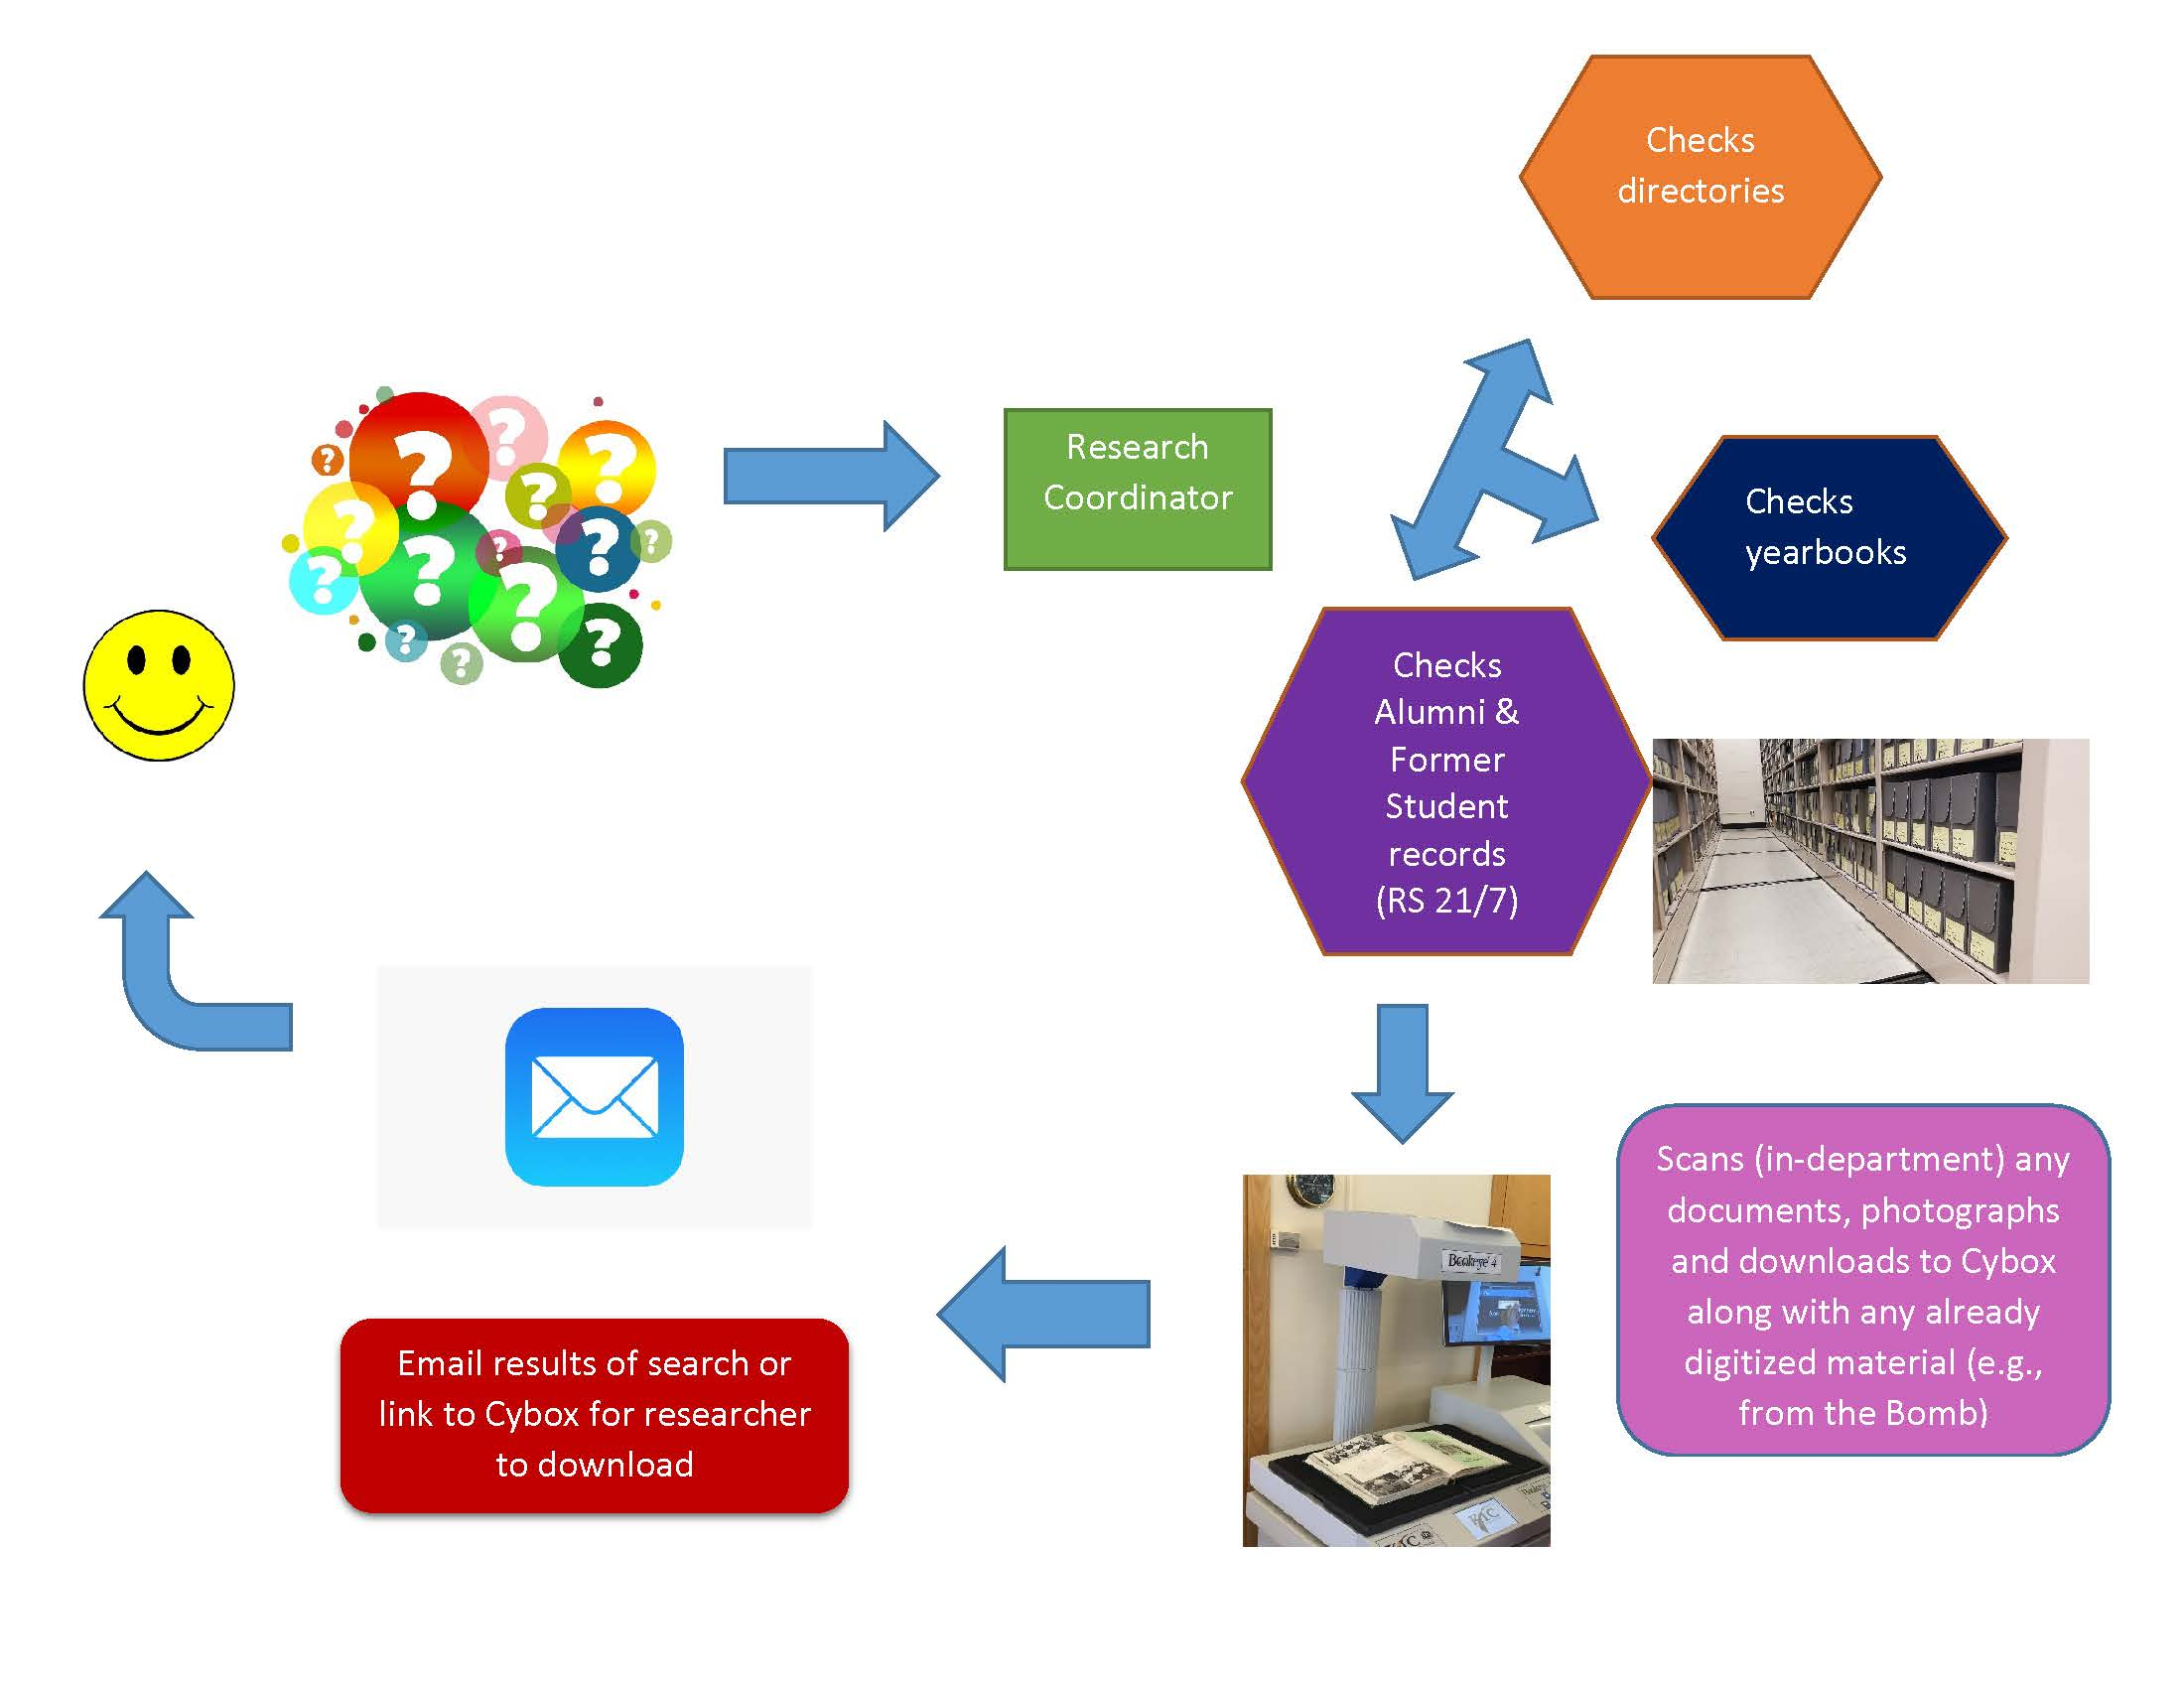 """Flow chart that uses visual and some text to explain the workflow for family history research requests. The smiley face and a cluster of question marks in different colors, represents the family history request. Then an  arrow to the Research Coordinator and then a three-way arrow pointing to 3 different processes """"Checks directories,"""" """"Checks yearbooks,' and """"Checks Alumni & Former Student records (RS 21/7)"""" in different octagons in different colors, accompanied by a photo of archival boxes on compact shelving. Then arrow goes points to a KIC scanner with a book on the bed and the explanation """"Scans (in-department"""" any documents, photographs and downloads to Cybox along with any alredy digitized material (e.g., from the Bomb). Then arrow goes to Email icon and """"Email results of search or link to Cybox for researcher to download"""" and then back full circle to researcher."""